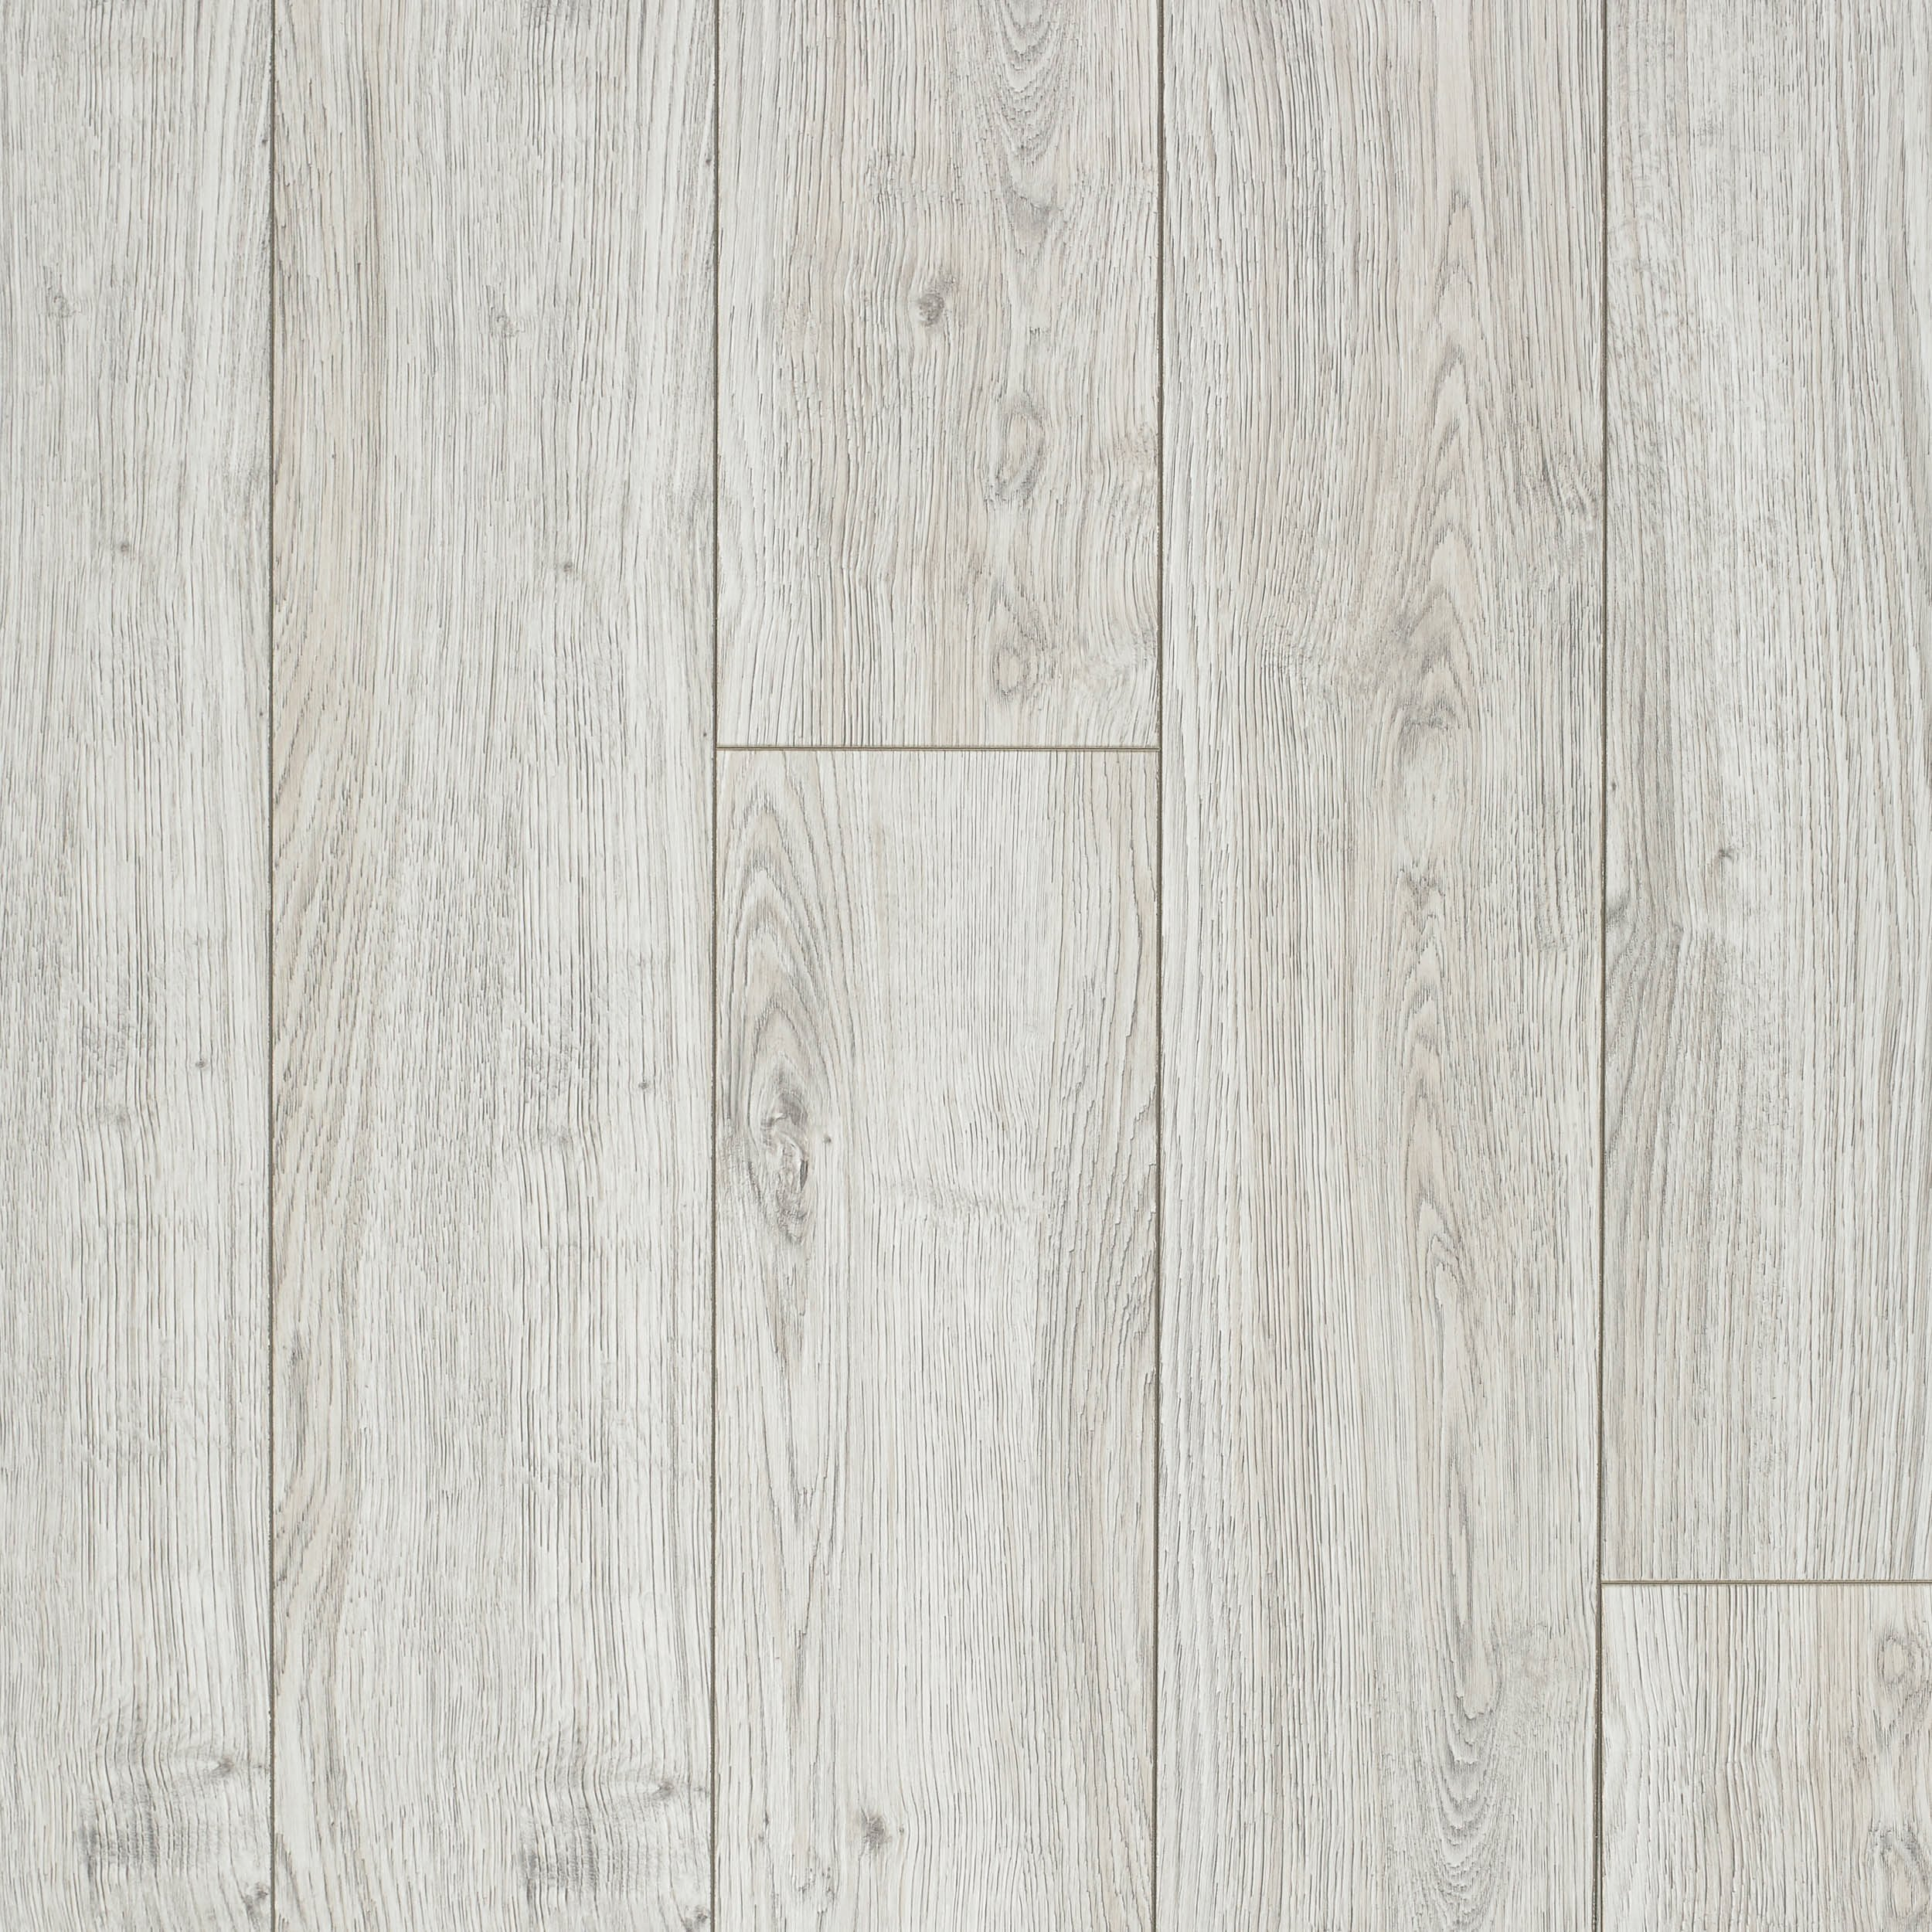 Buff Creme Water Resistant Laminate 12mm 100489830